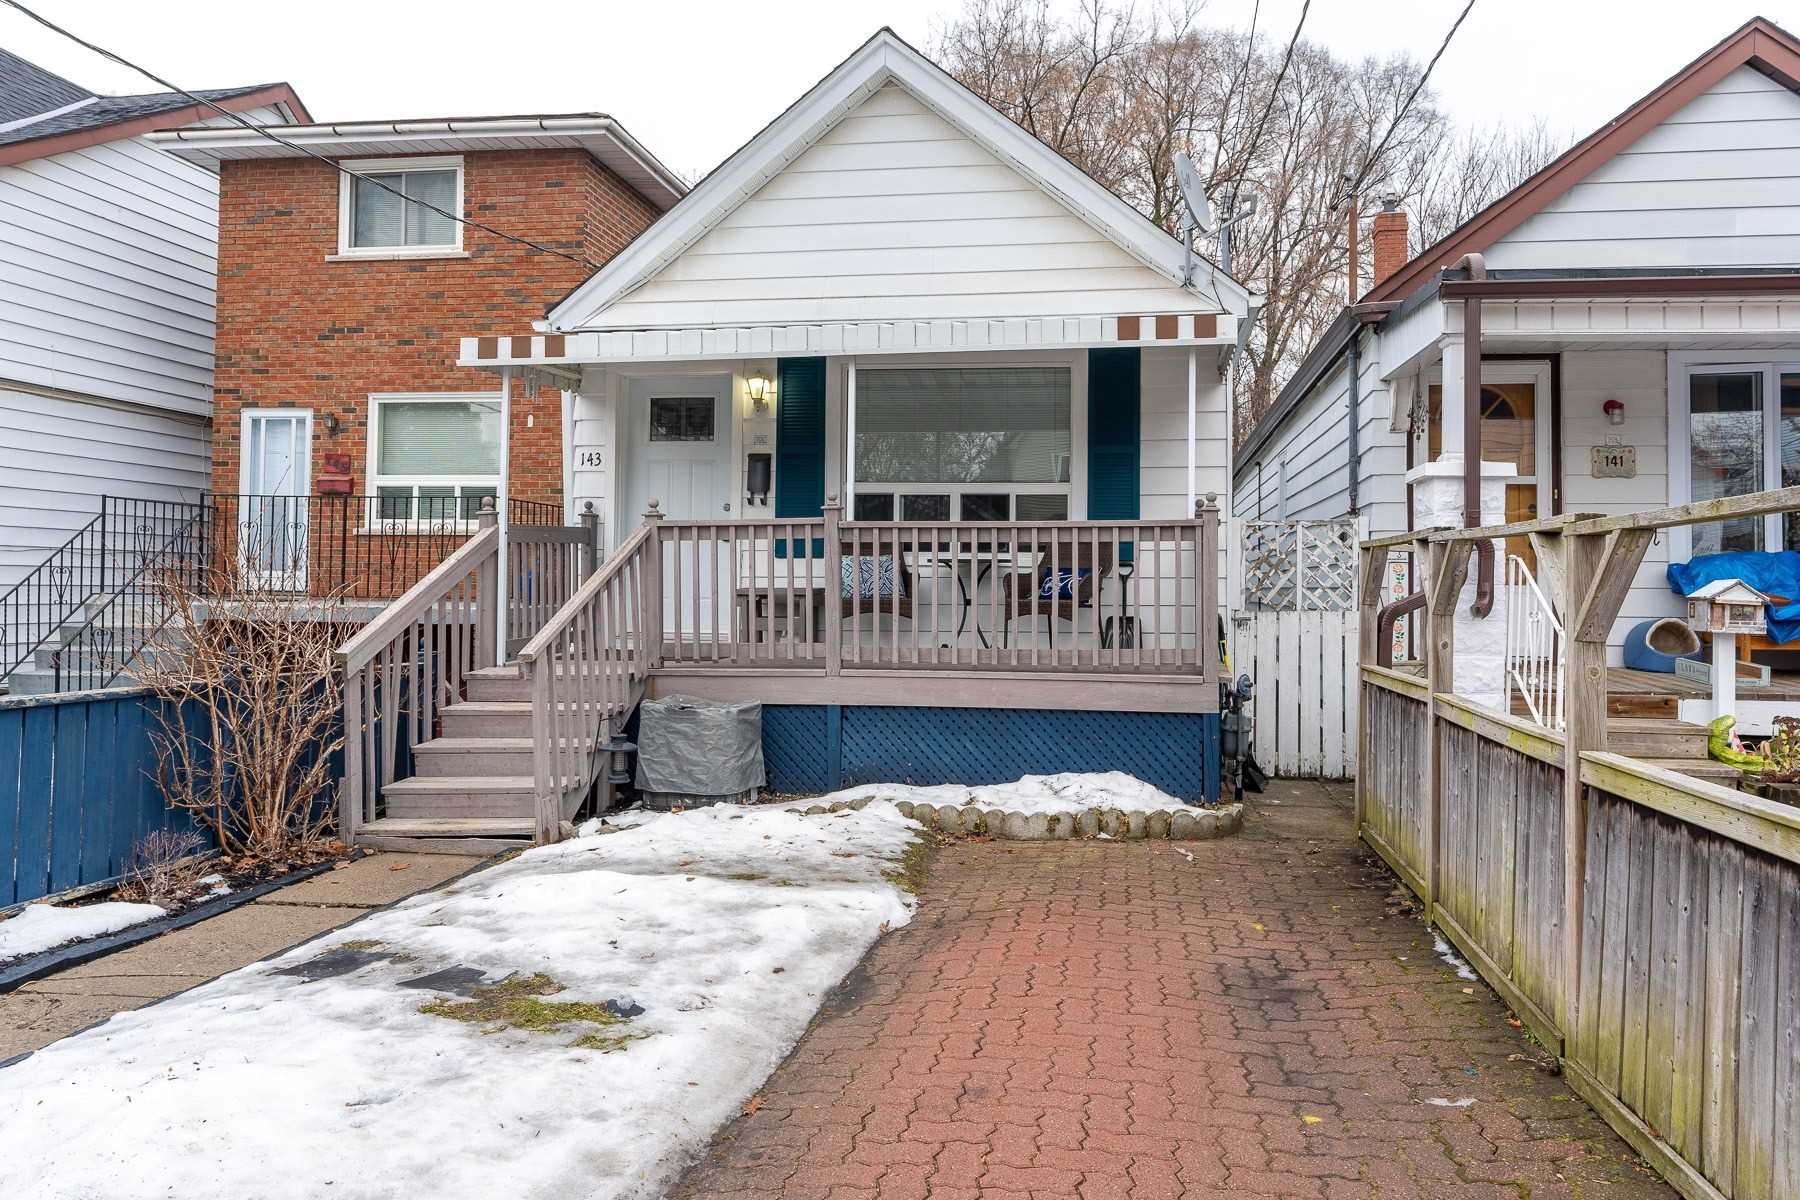 pictures of house for sale MLS: E5086930 located at 143 King Edward Ave, Toronto M4C5J7